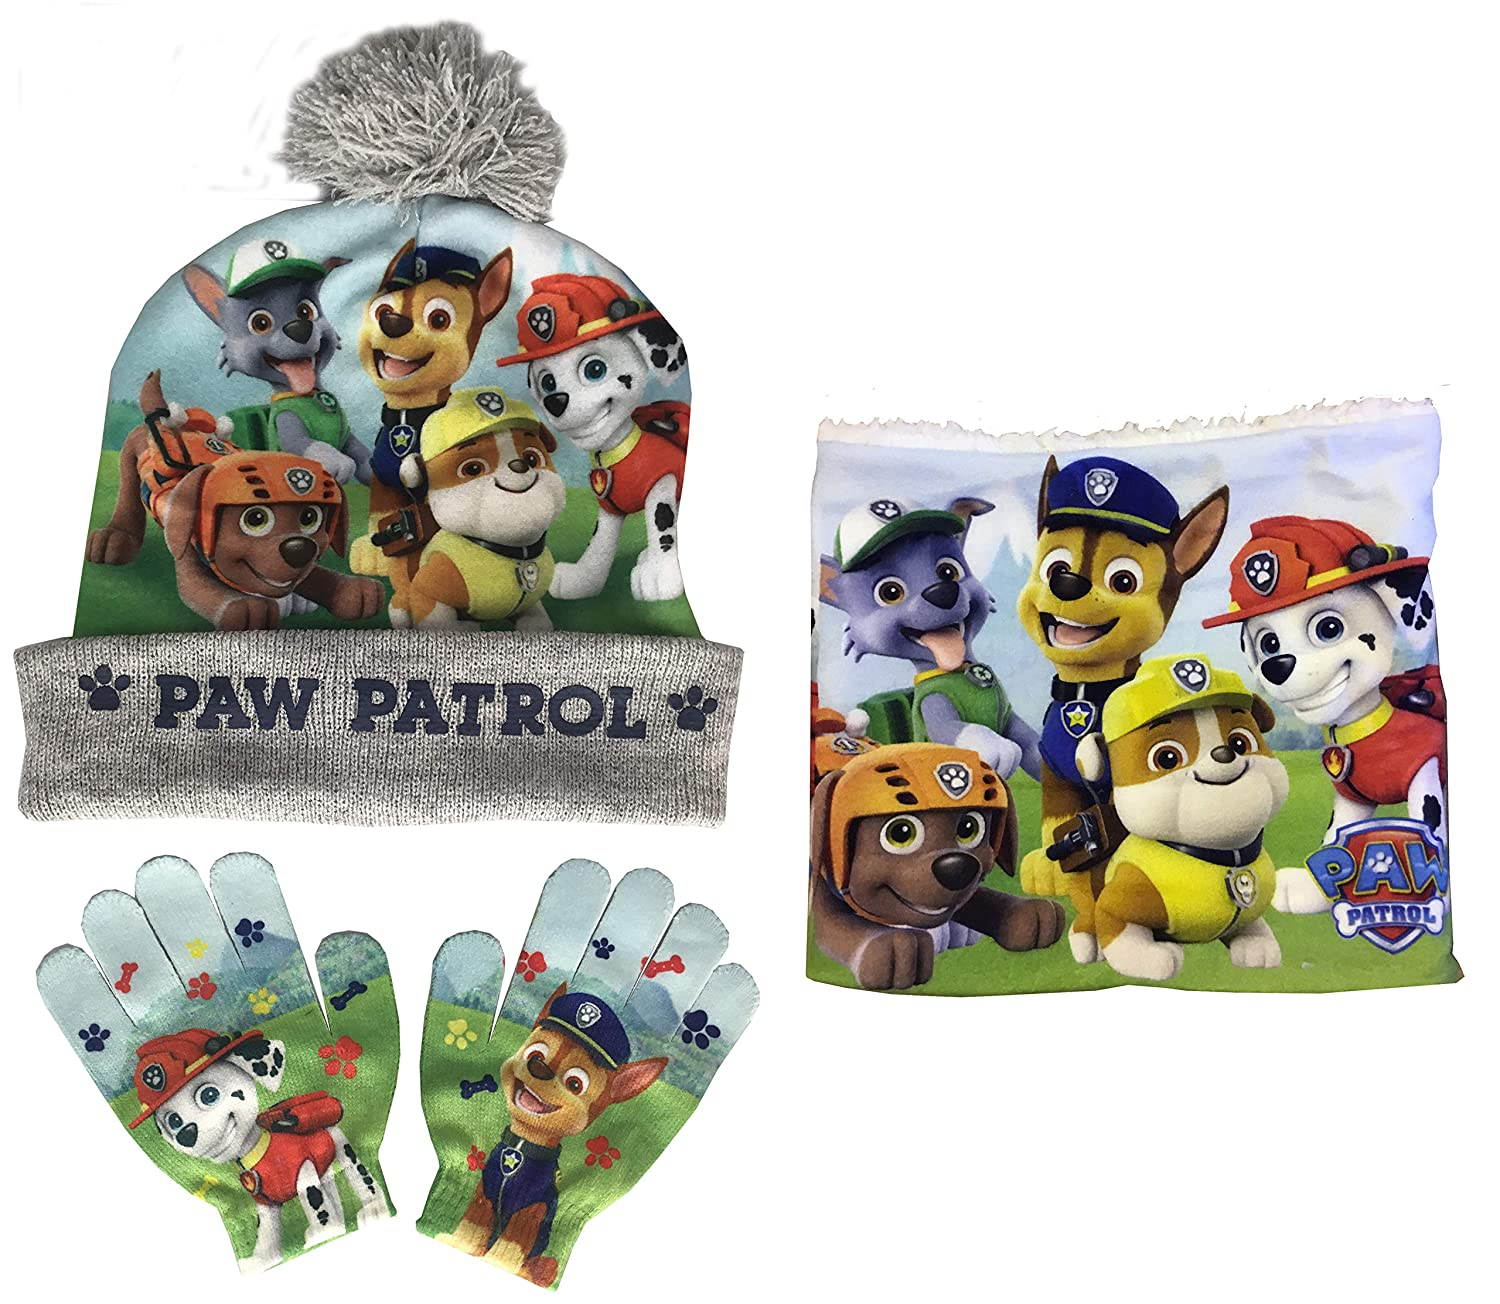 PAW PATROL HAT, SNOOD AND GLOVES SET by Jujak